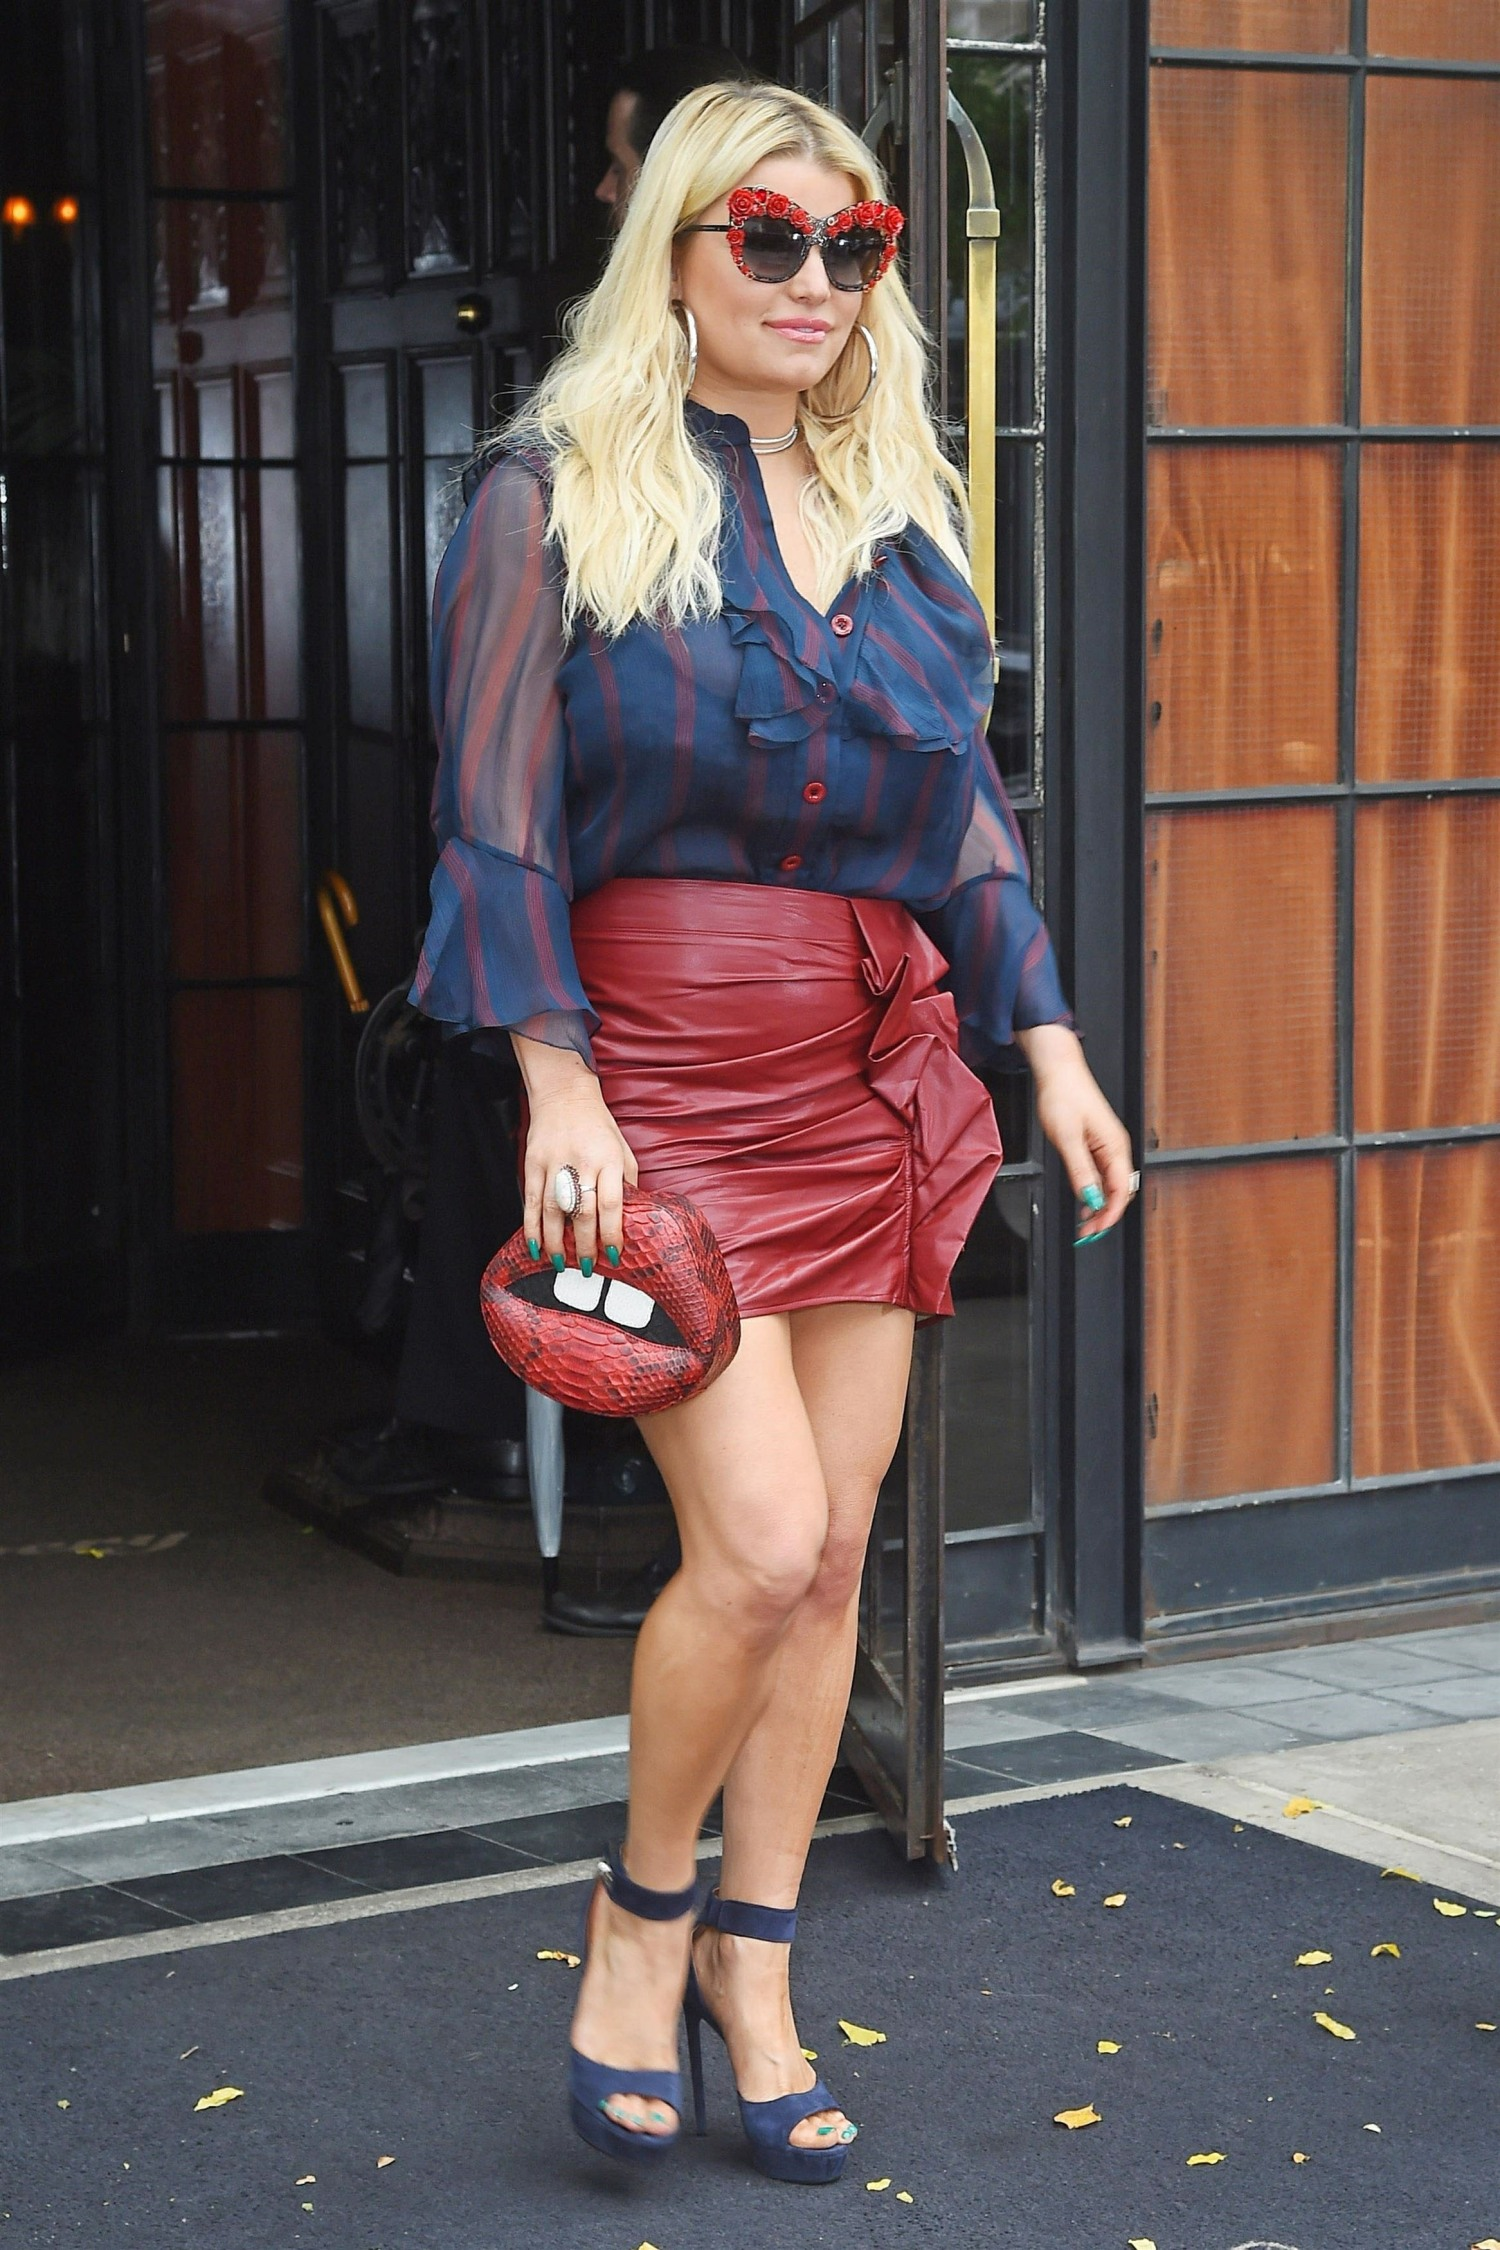 Jessica Simpson shows off her style as she leaves the Bowery Hotel